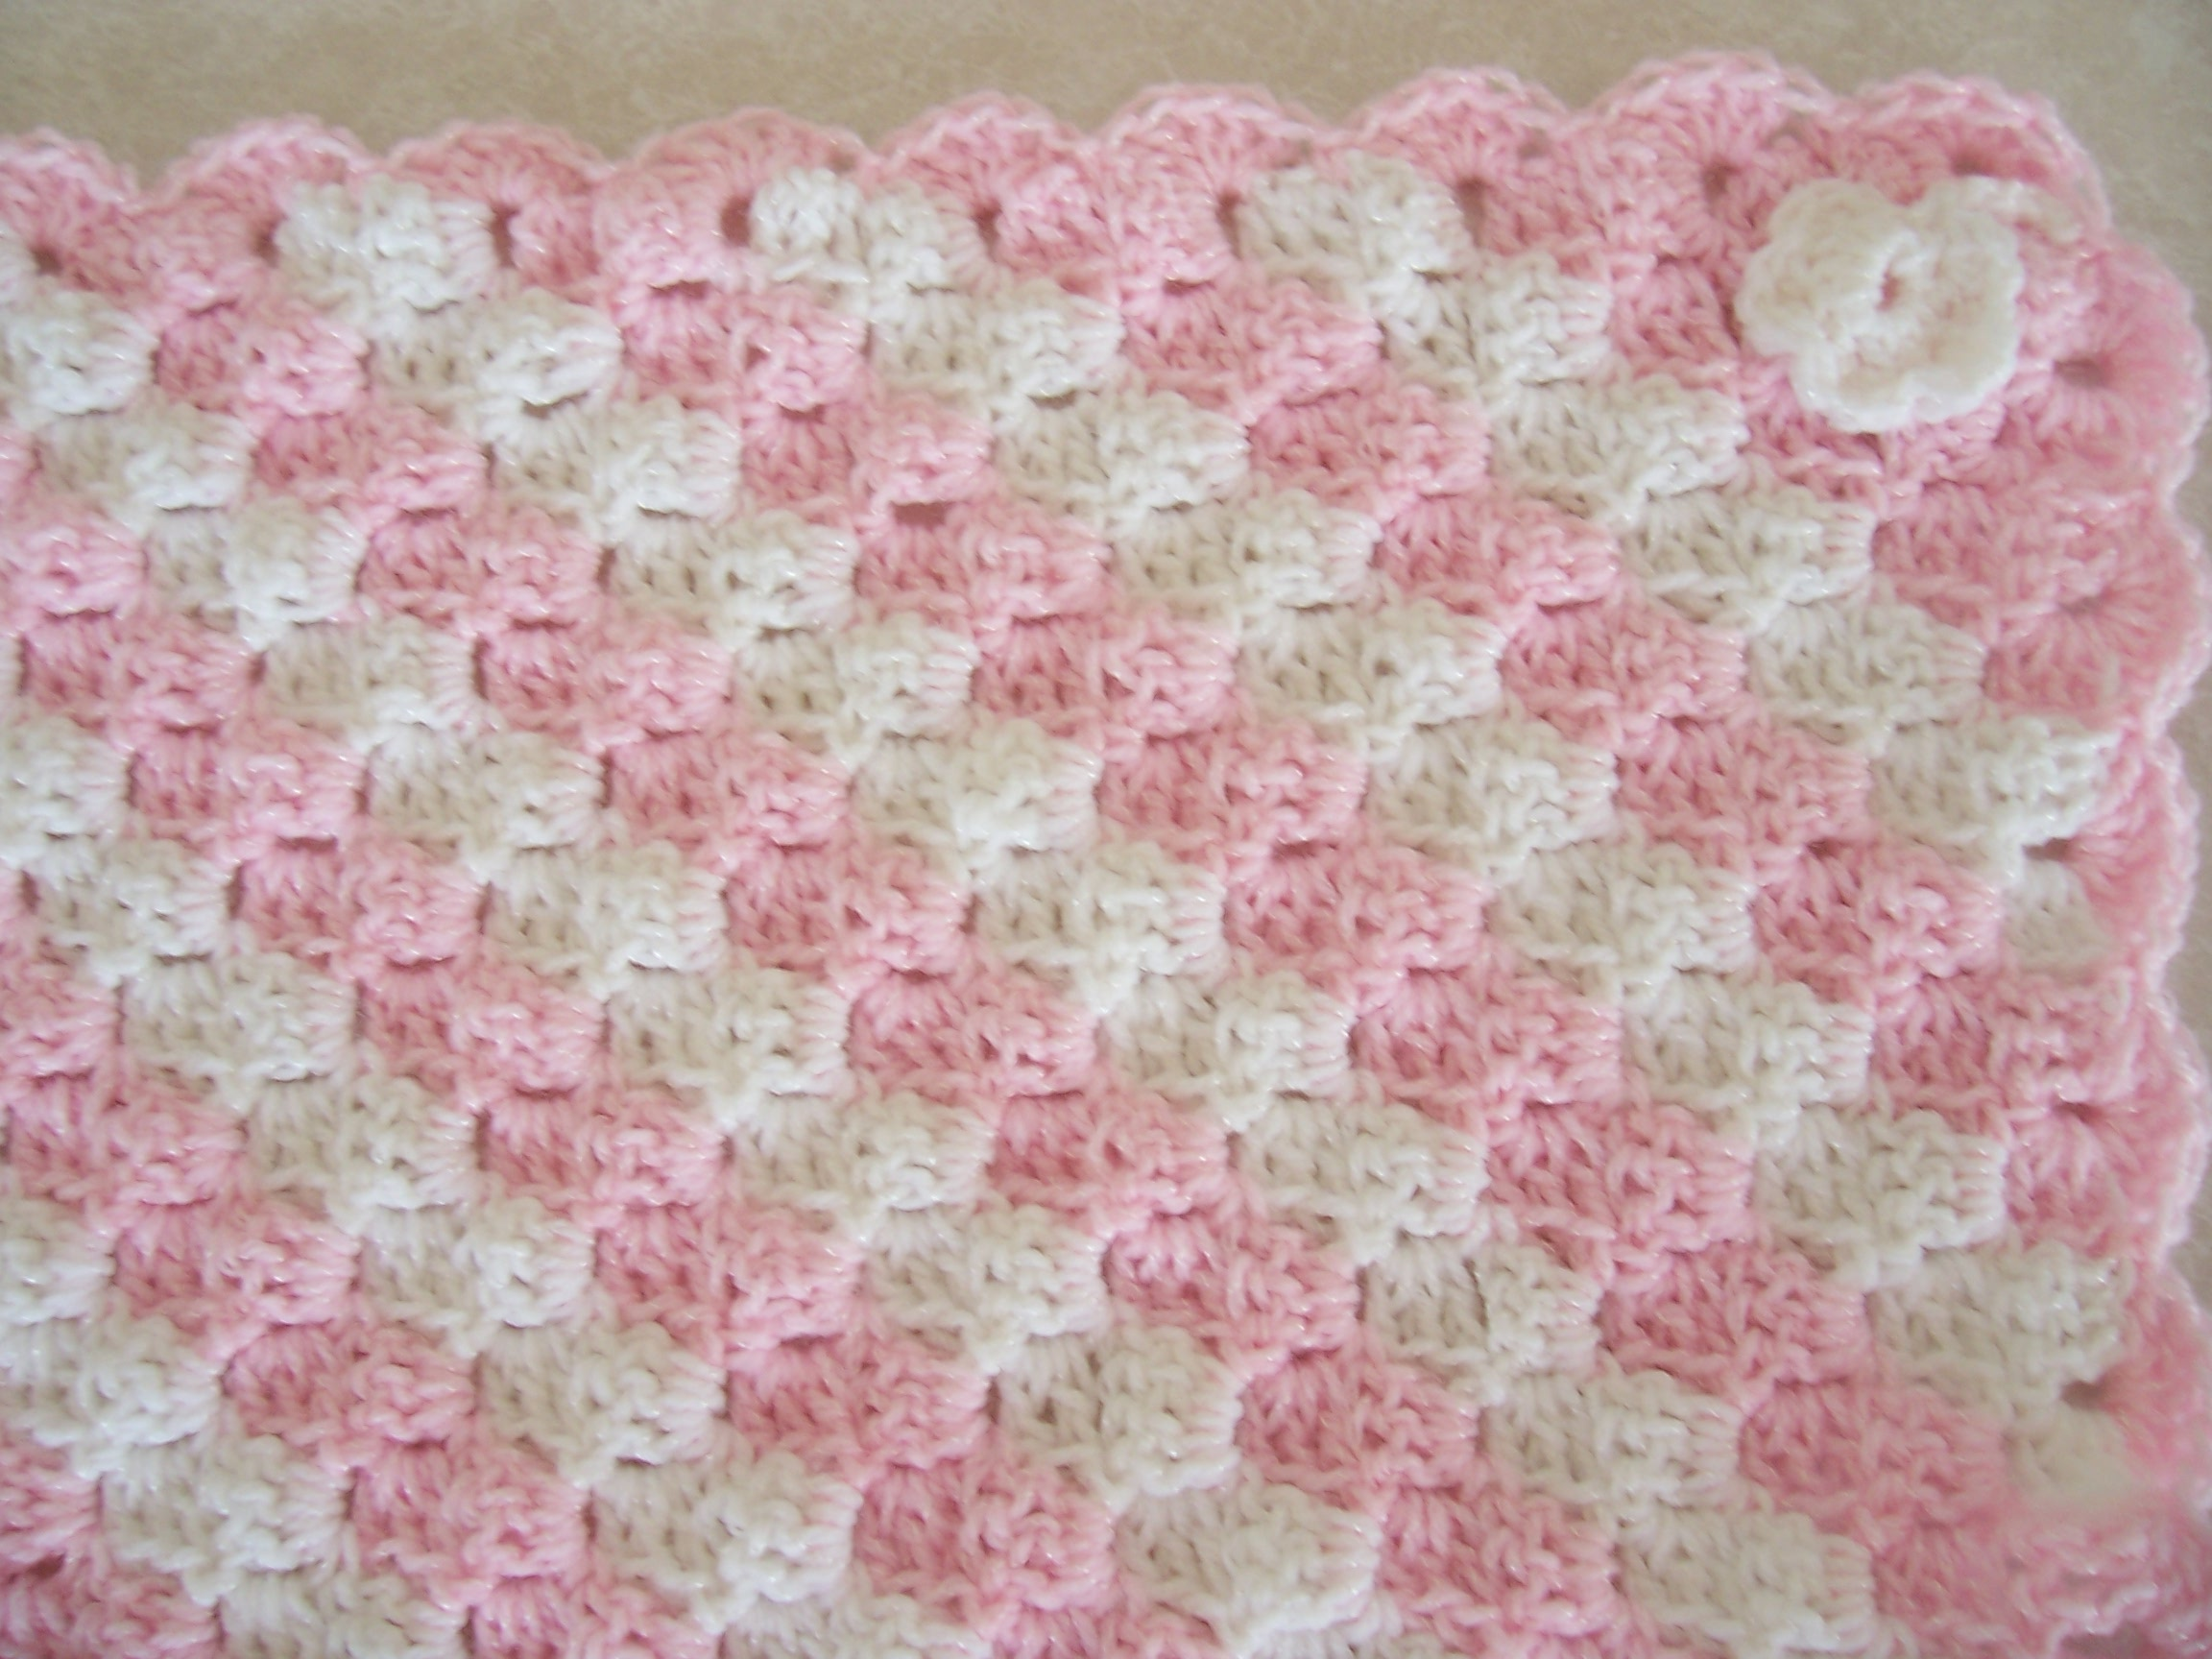 Crochet Patterns Of Baby Blankets : BABY BLANKET CROCHET DIAGONAL PATTERN Patterns